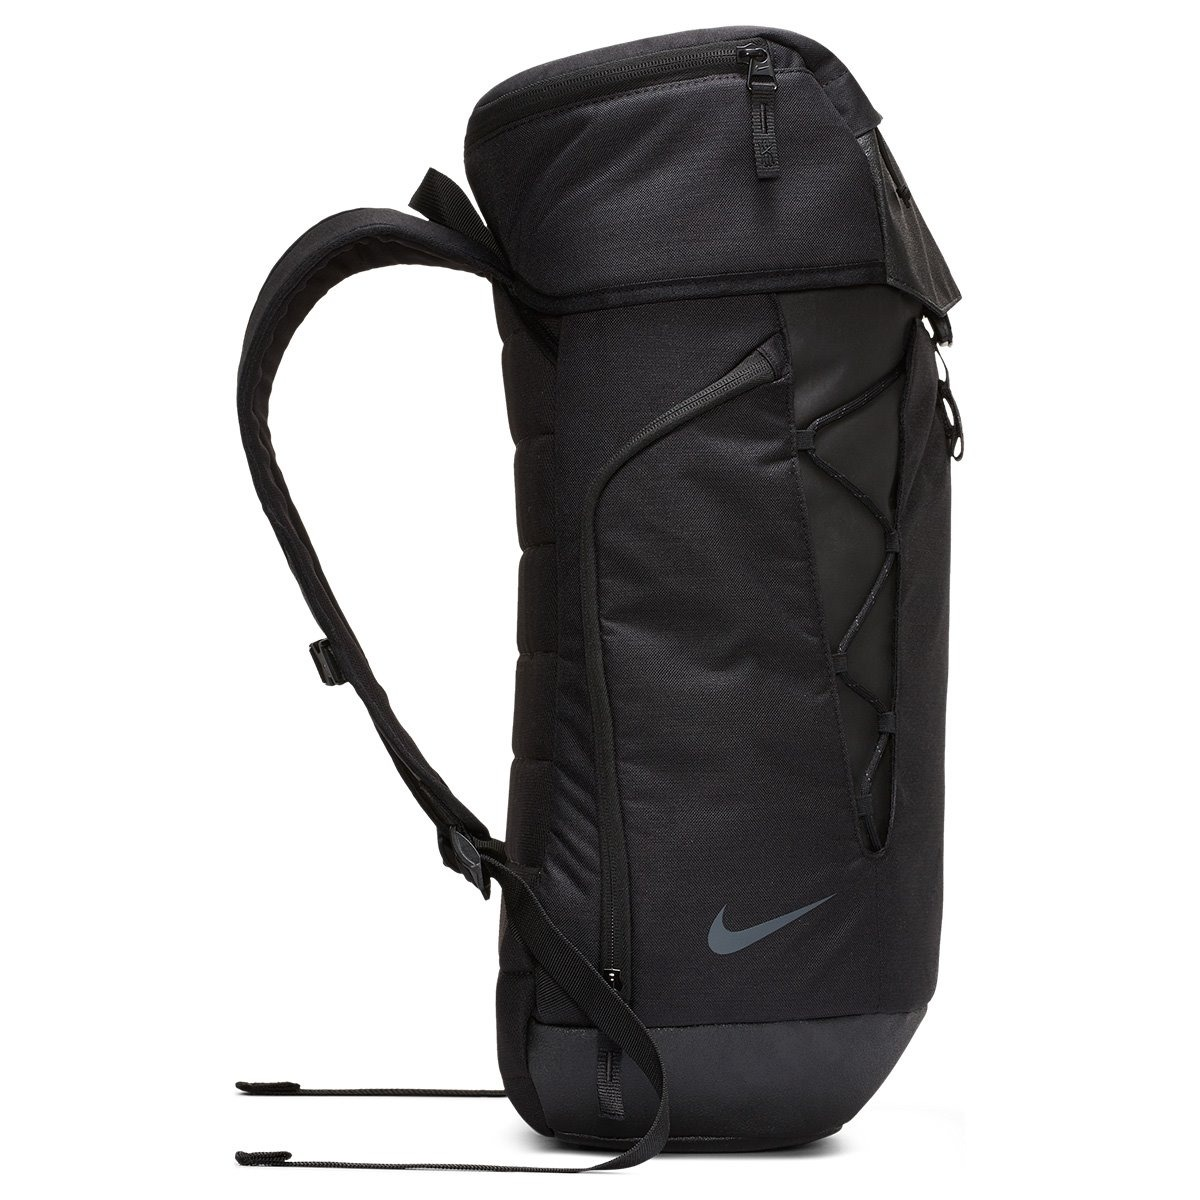 1d83082f3d49 nike kyrie irving 5 mochila basquetbol 37 l backpack 2019. Cargando zoom.